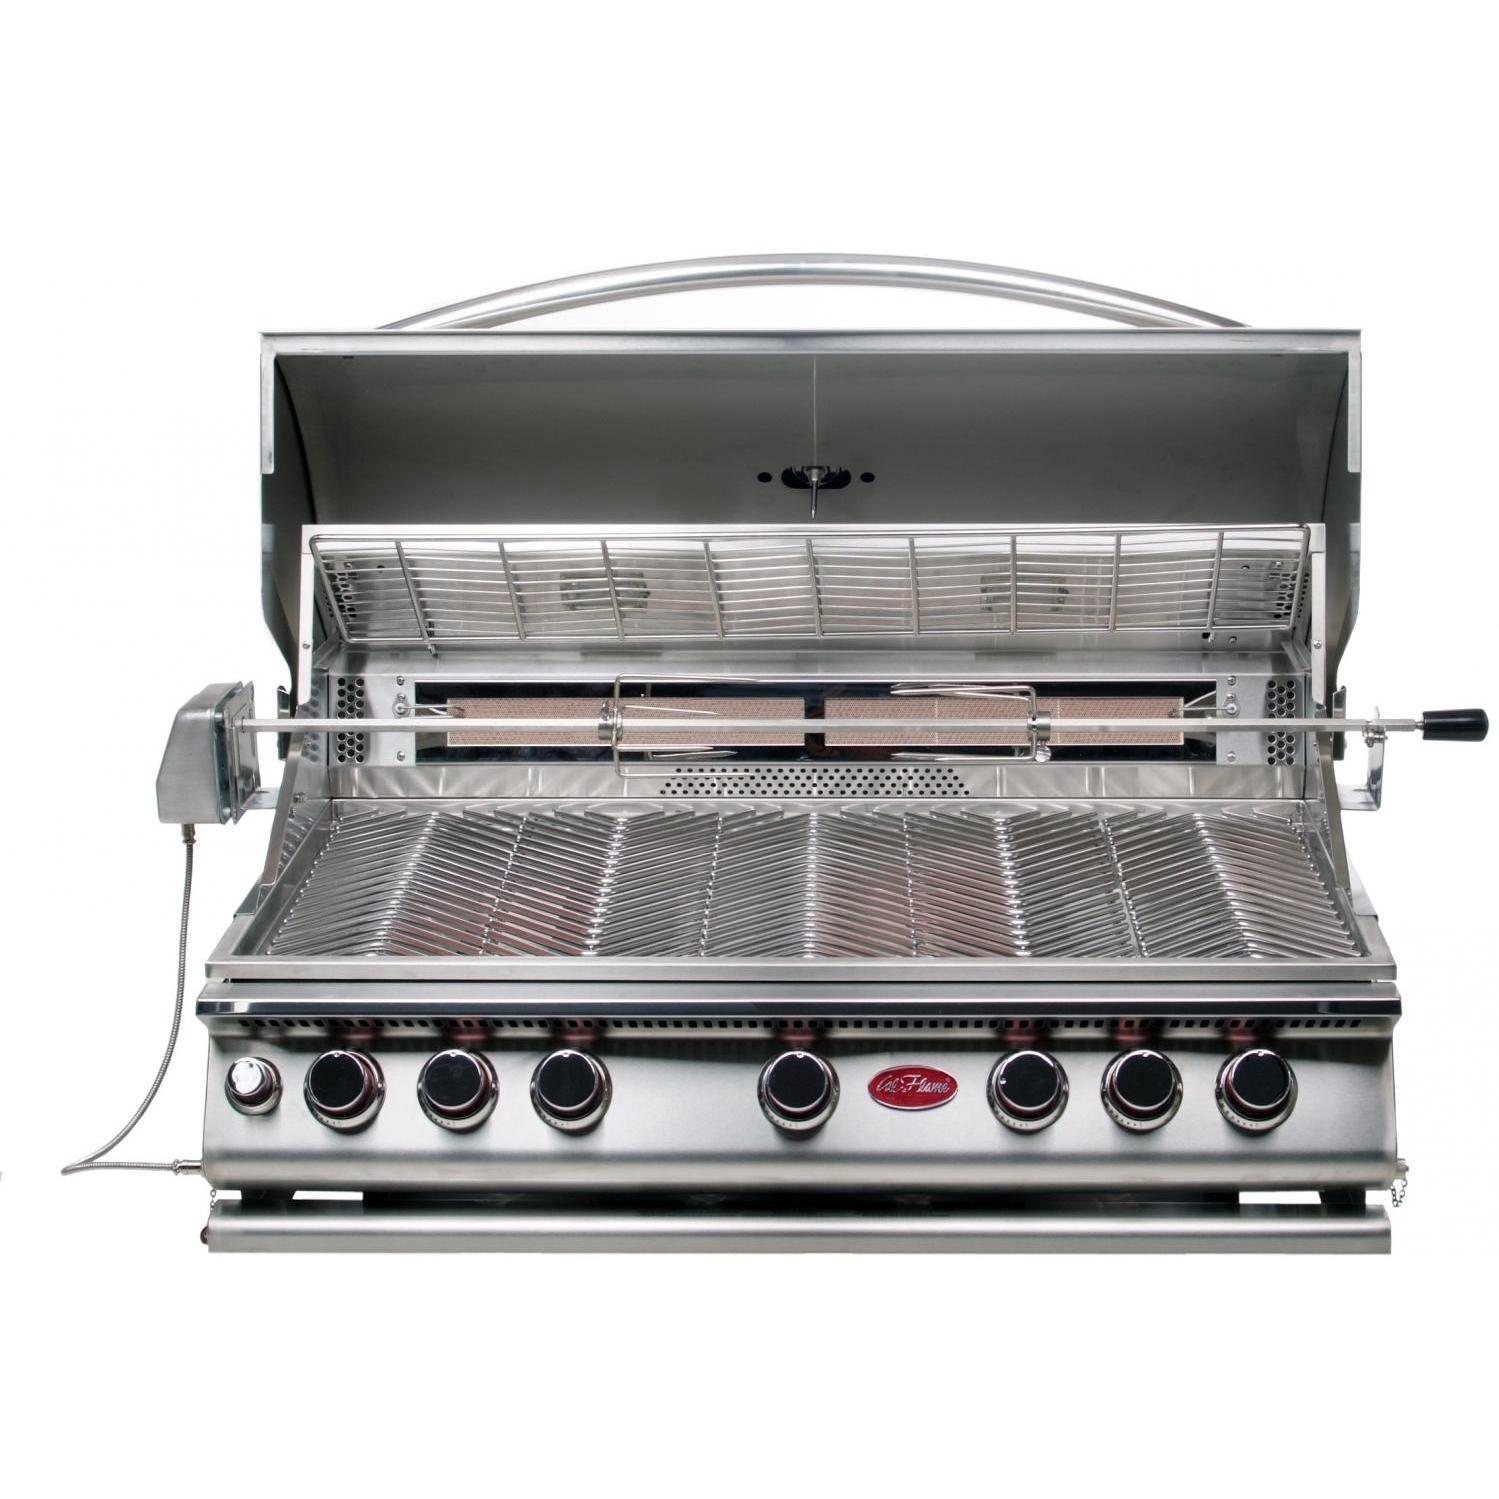 Cal Flame 40-Inch 5-Burner Convection Built-In Propane Gas Grill With Rotisserie - BBQ13875CP 461386